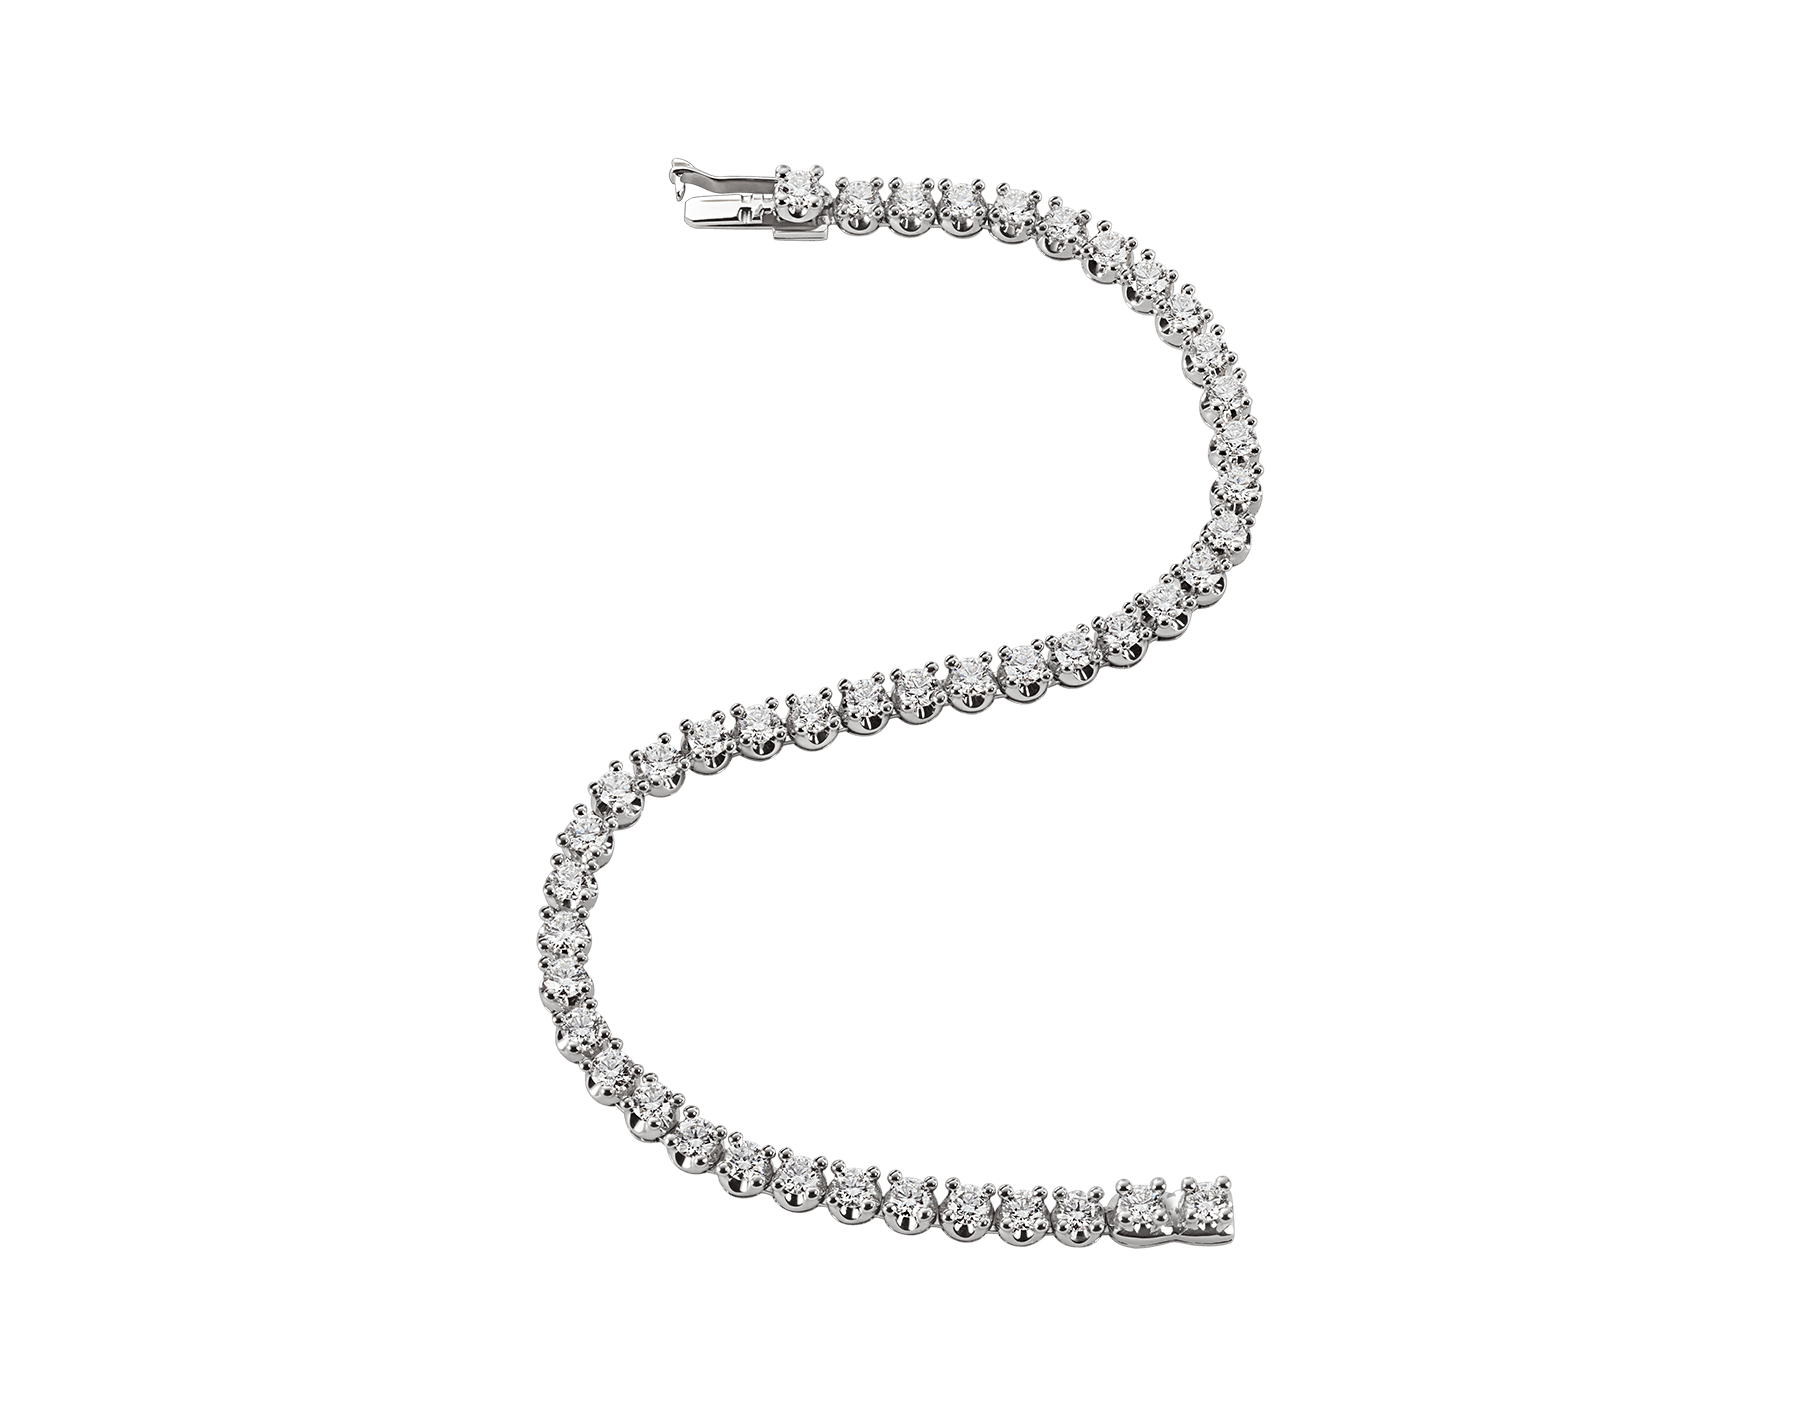 Corona 18 kt white gold tennis bracelet with round brilliant cut diamonds BR850566 image 2